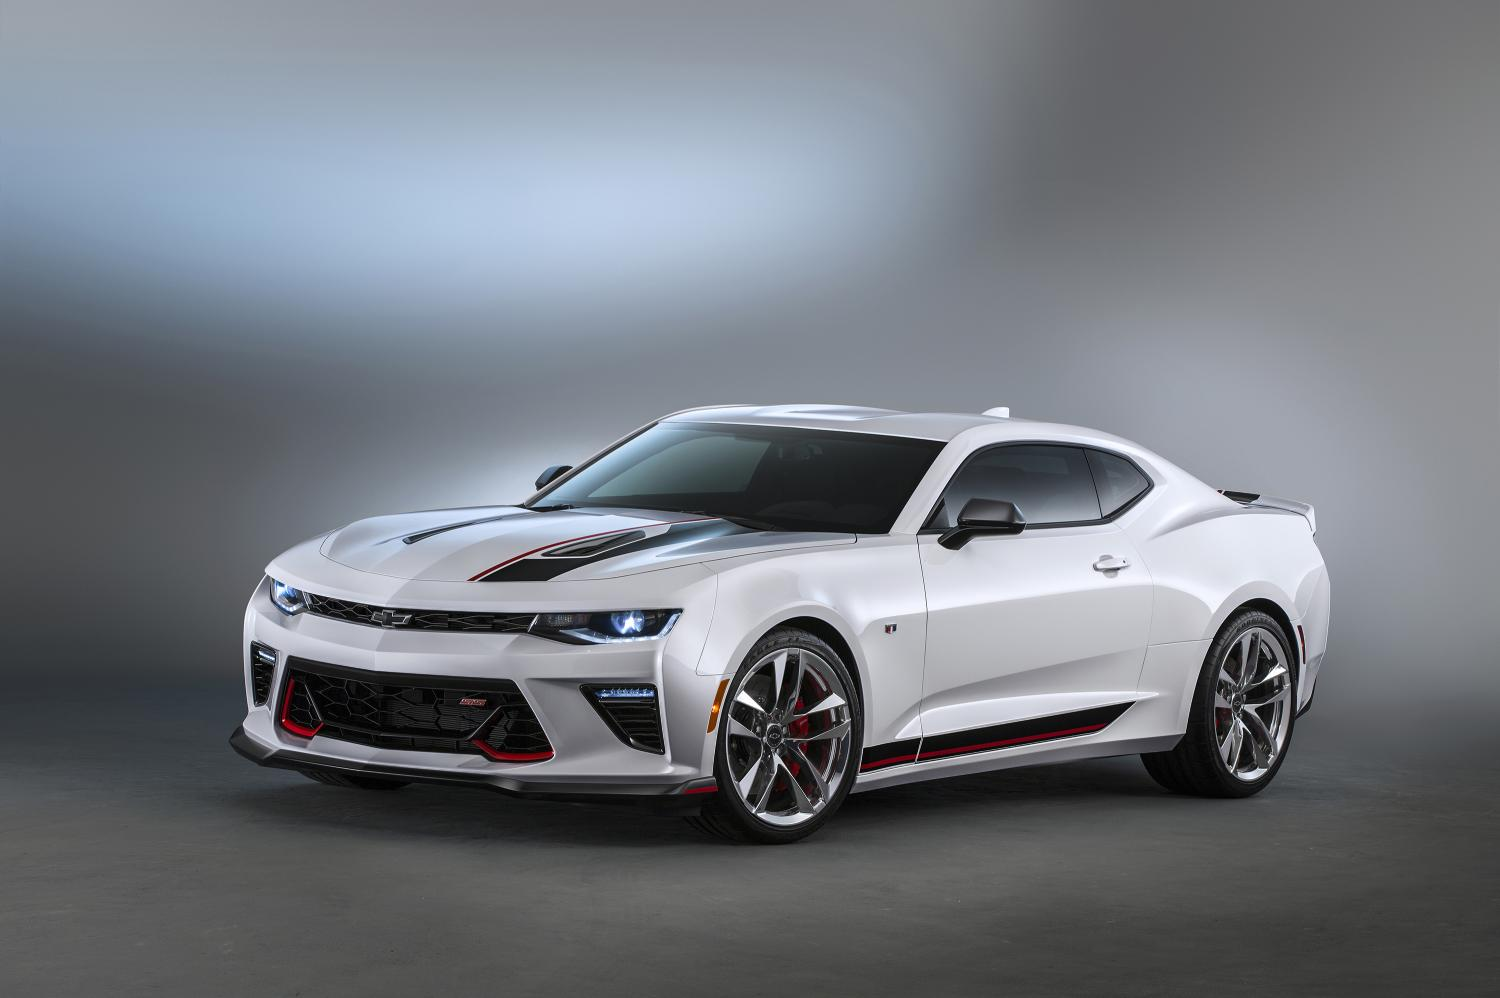 Chevy Performance Parts >> 2016 Chevy Camaro Gets 4 Custom Concepts for 2015 SEMA Show - autoevolution